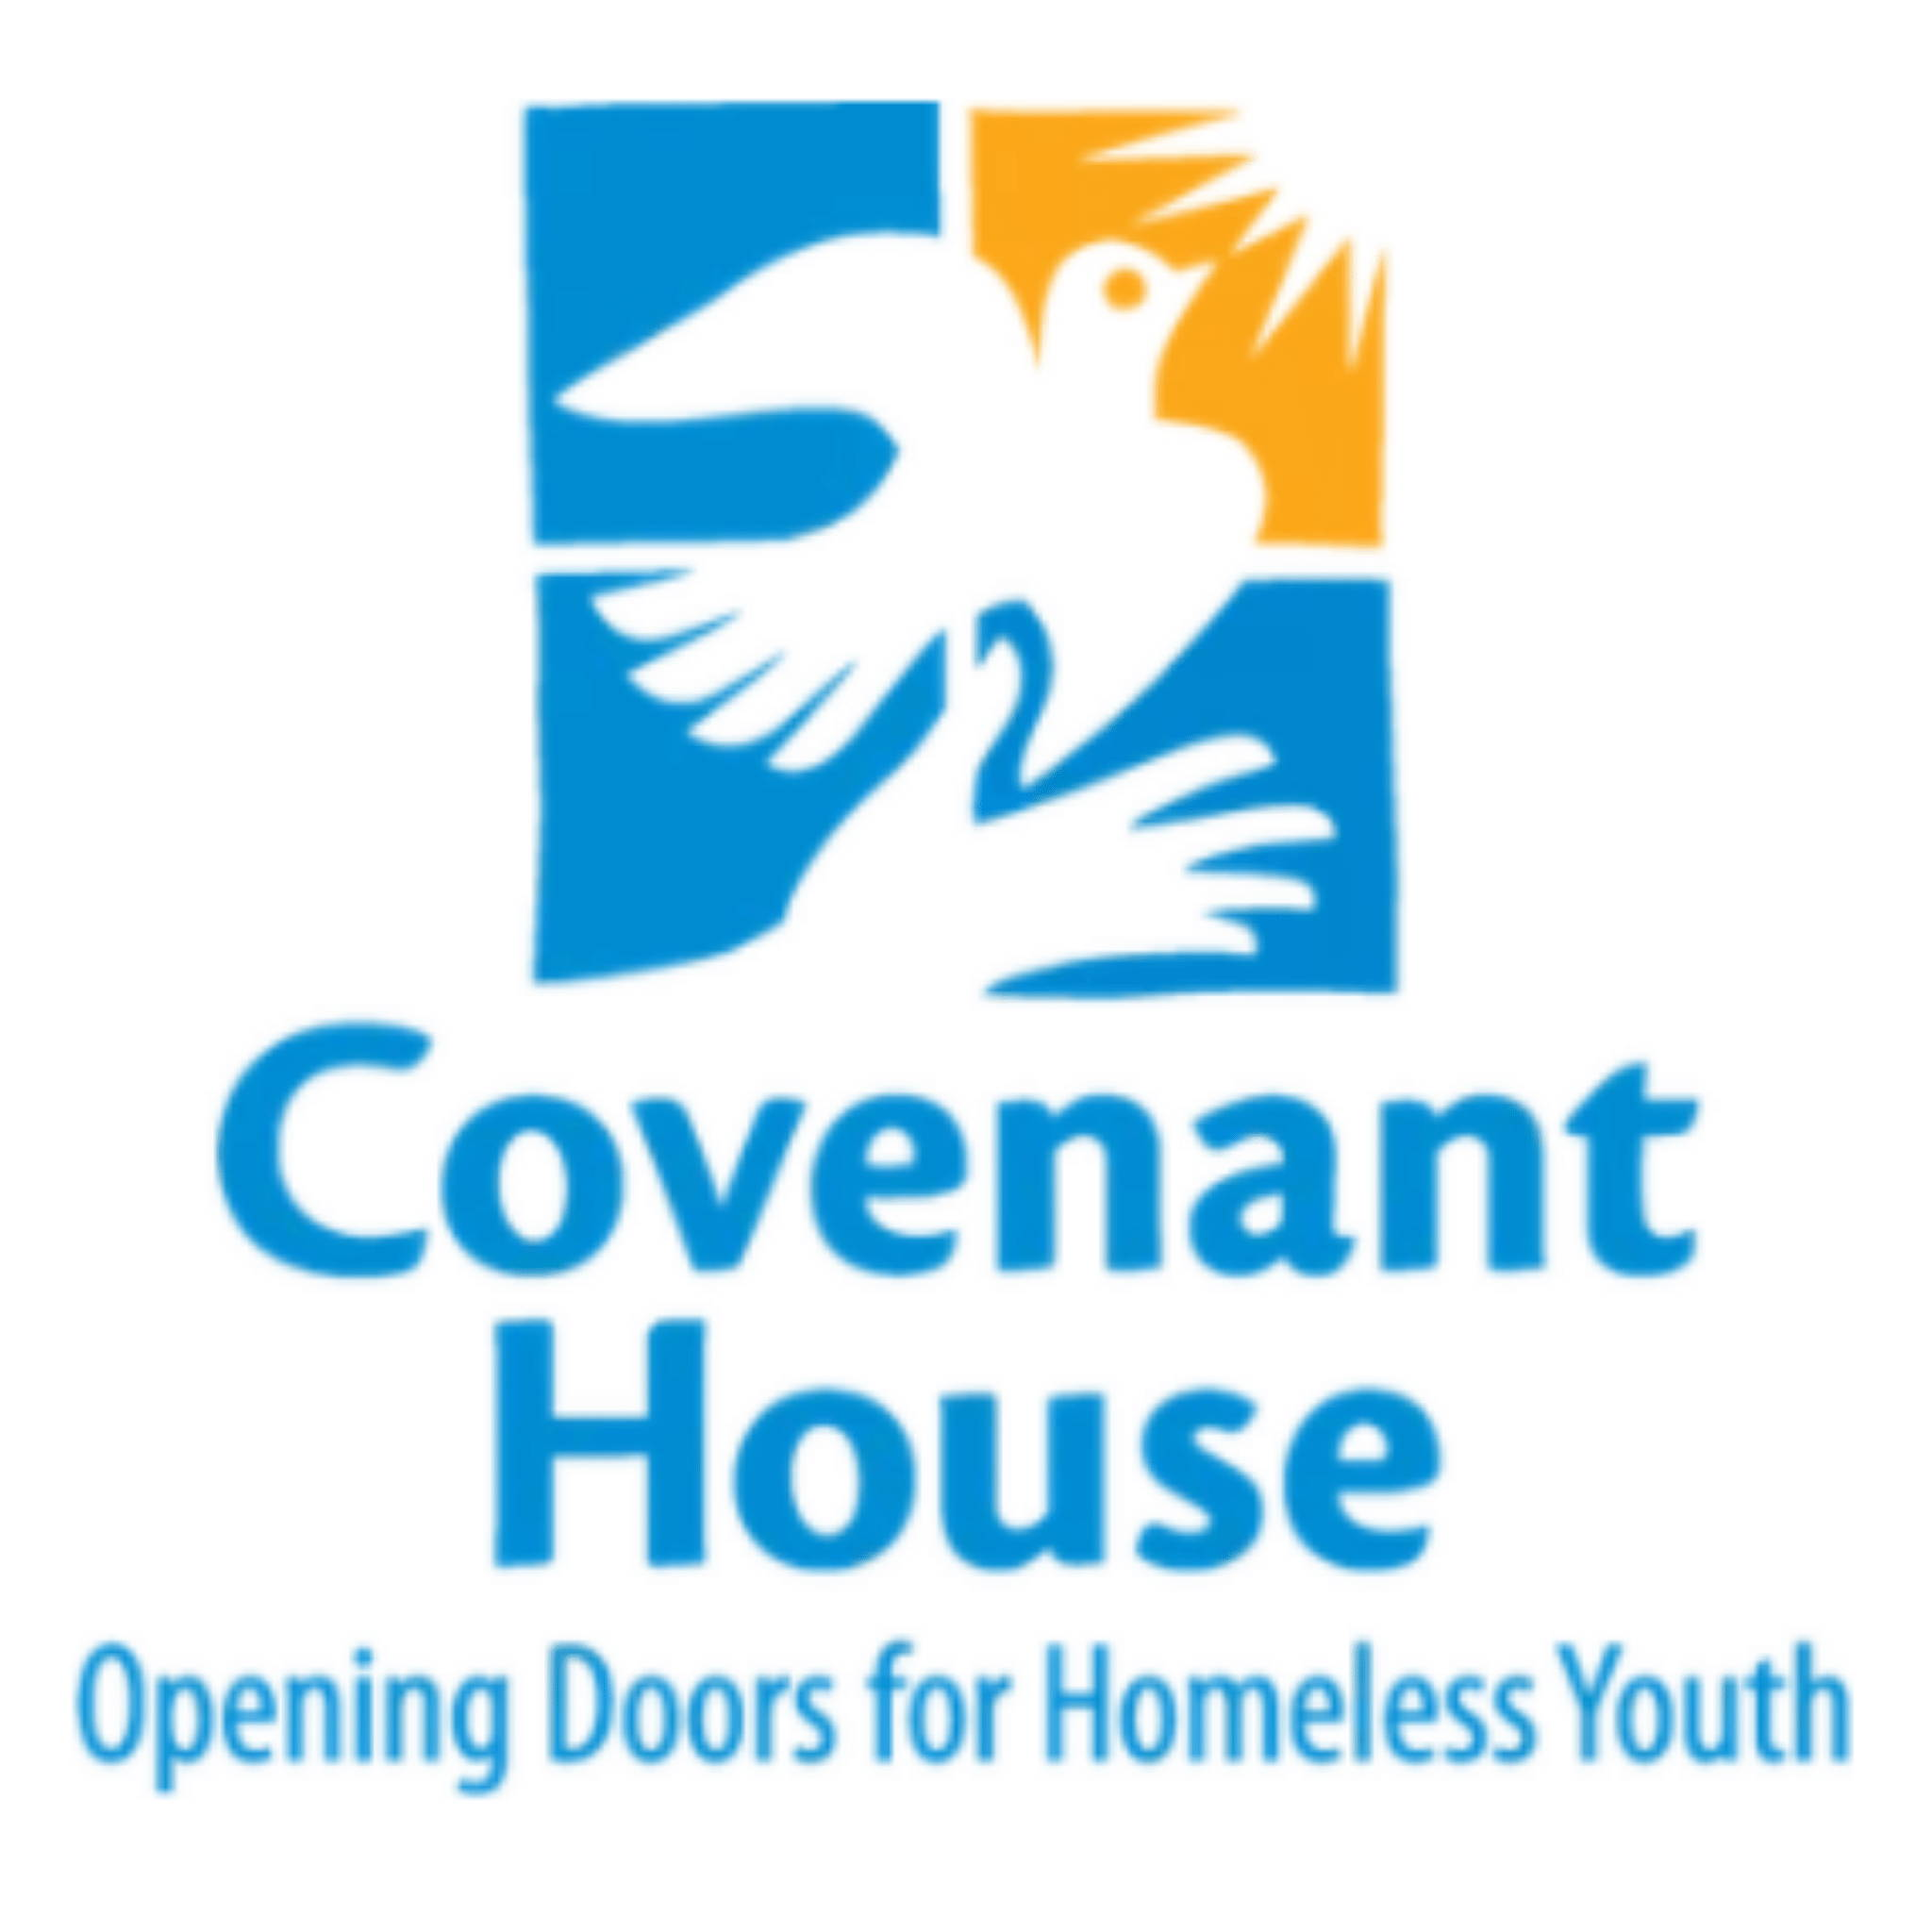 Covenant House partnered charity with Haven Mattress